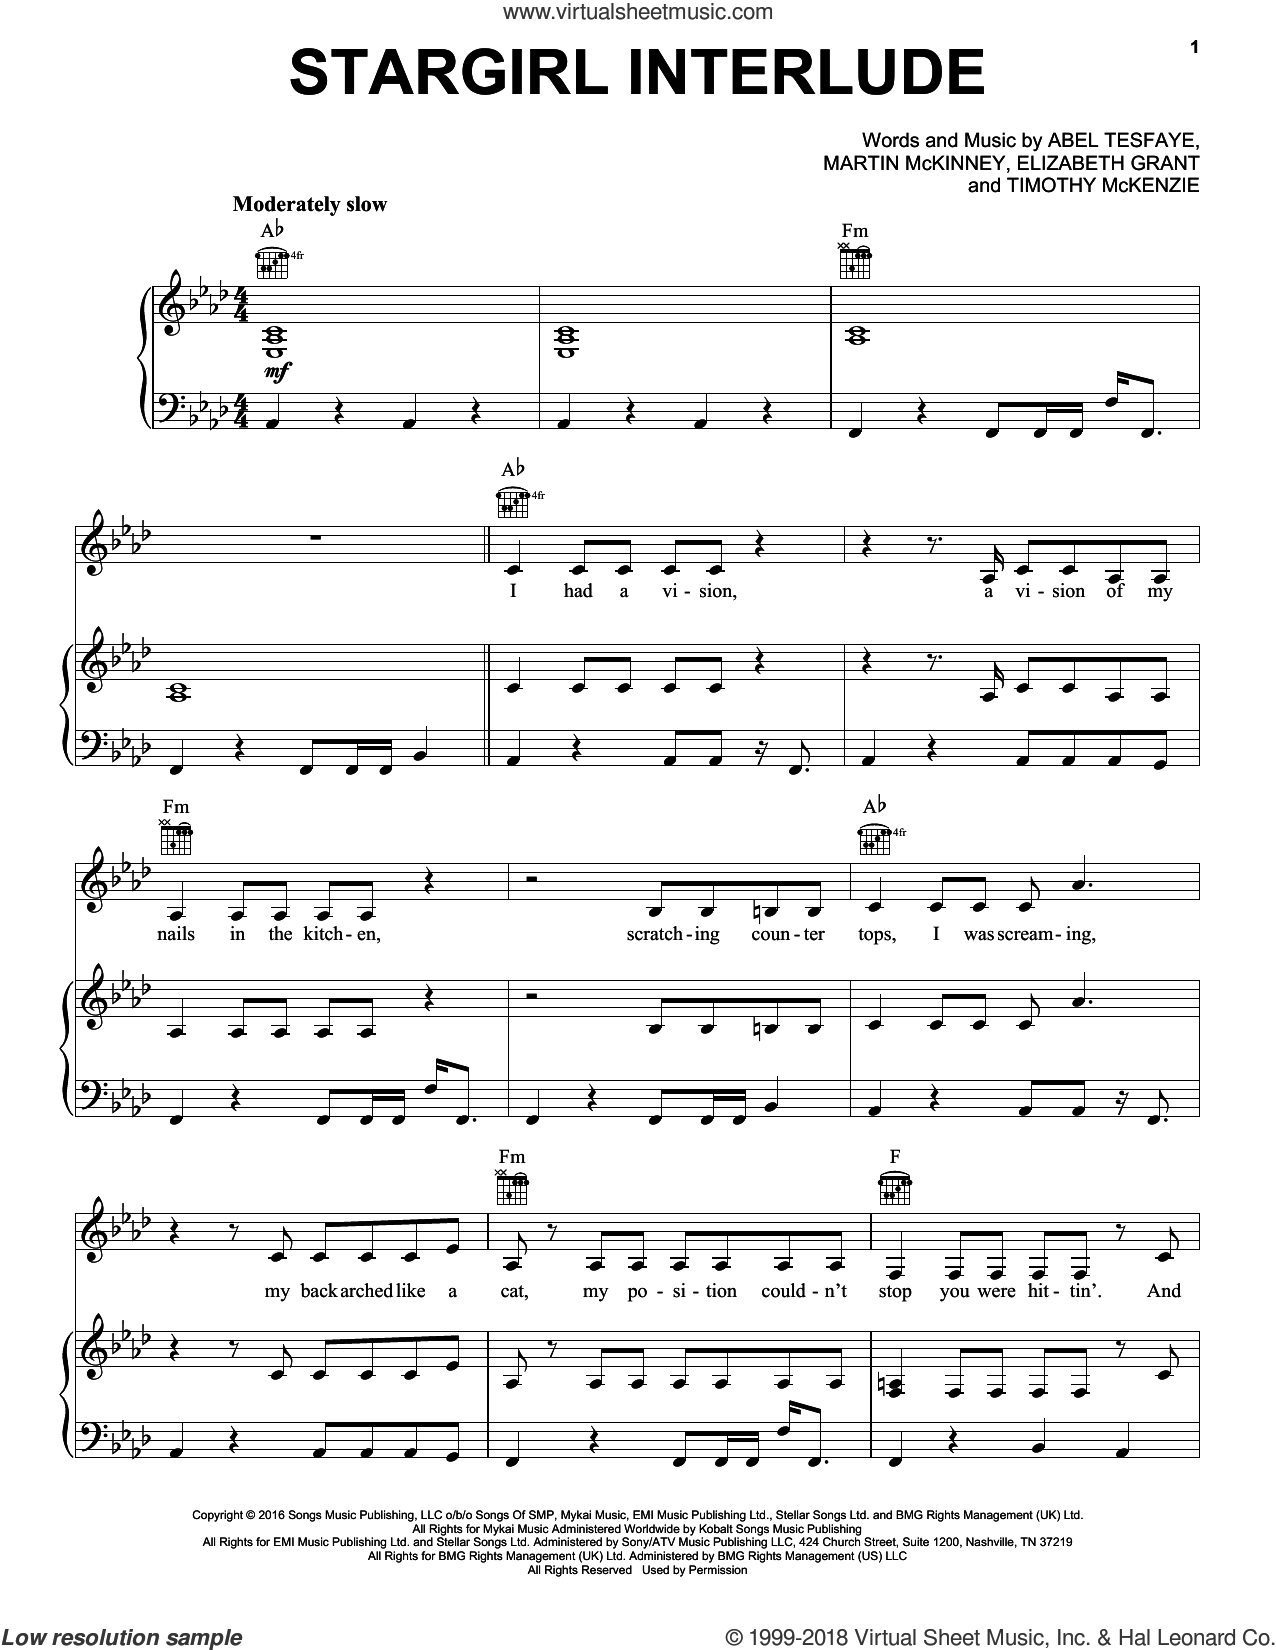 Stargirl Interlude sheet music for voice, piano or guitar by The Weeknd, Abel Tesfaye, Elizabeth Grant, Martin McKinney and Timothy McKenzie, intermediate skill level